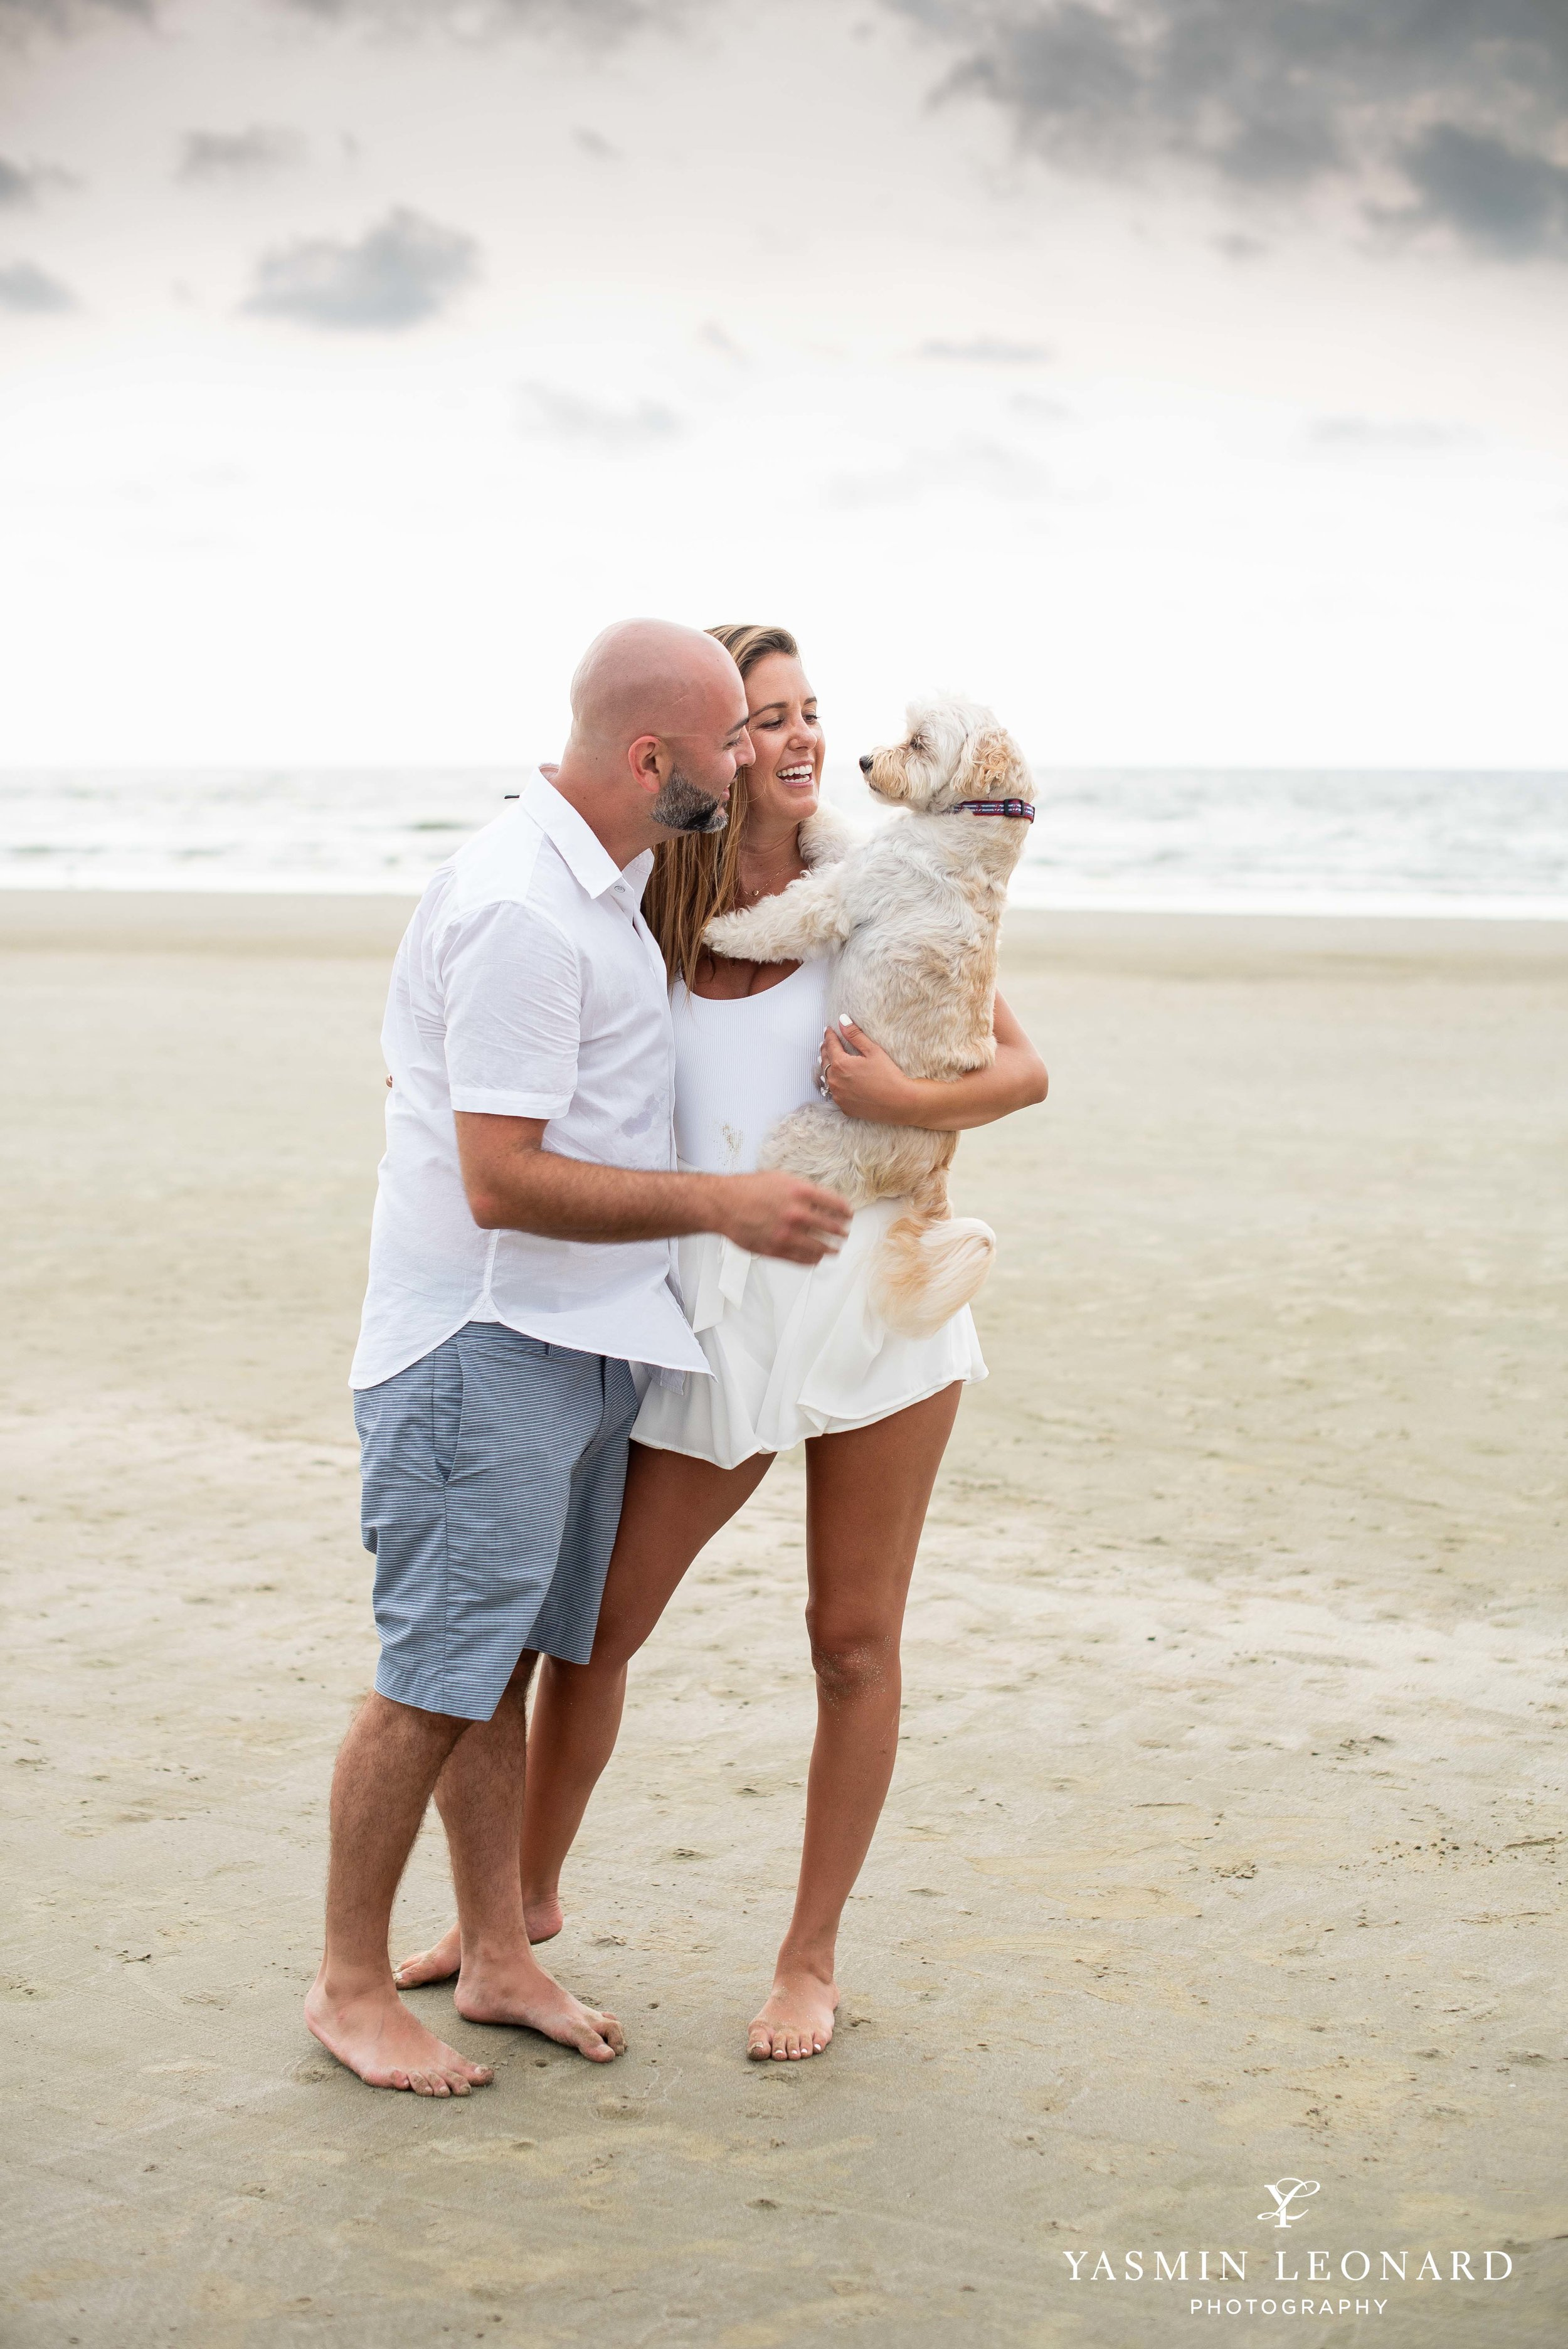 Beach Proposal - Beach Engagement Kiawah Island Photographer - NC Beach Photographer - How He Asked - NC Photographer - Proposal Ideas - Engagement Ring - Yasmin Leonard Photography-9.jpg